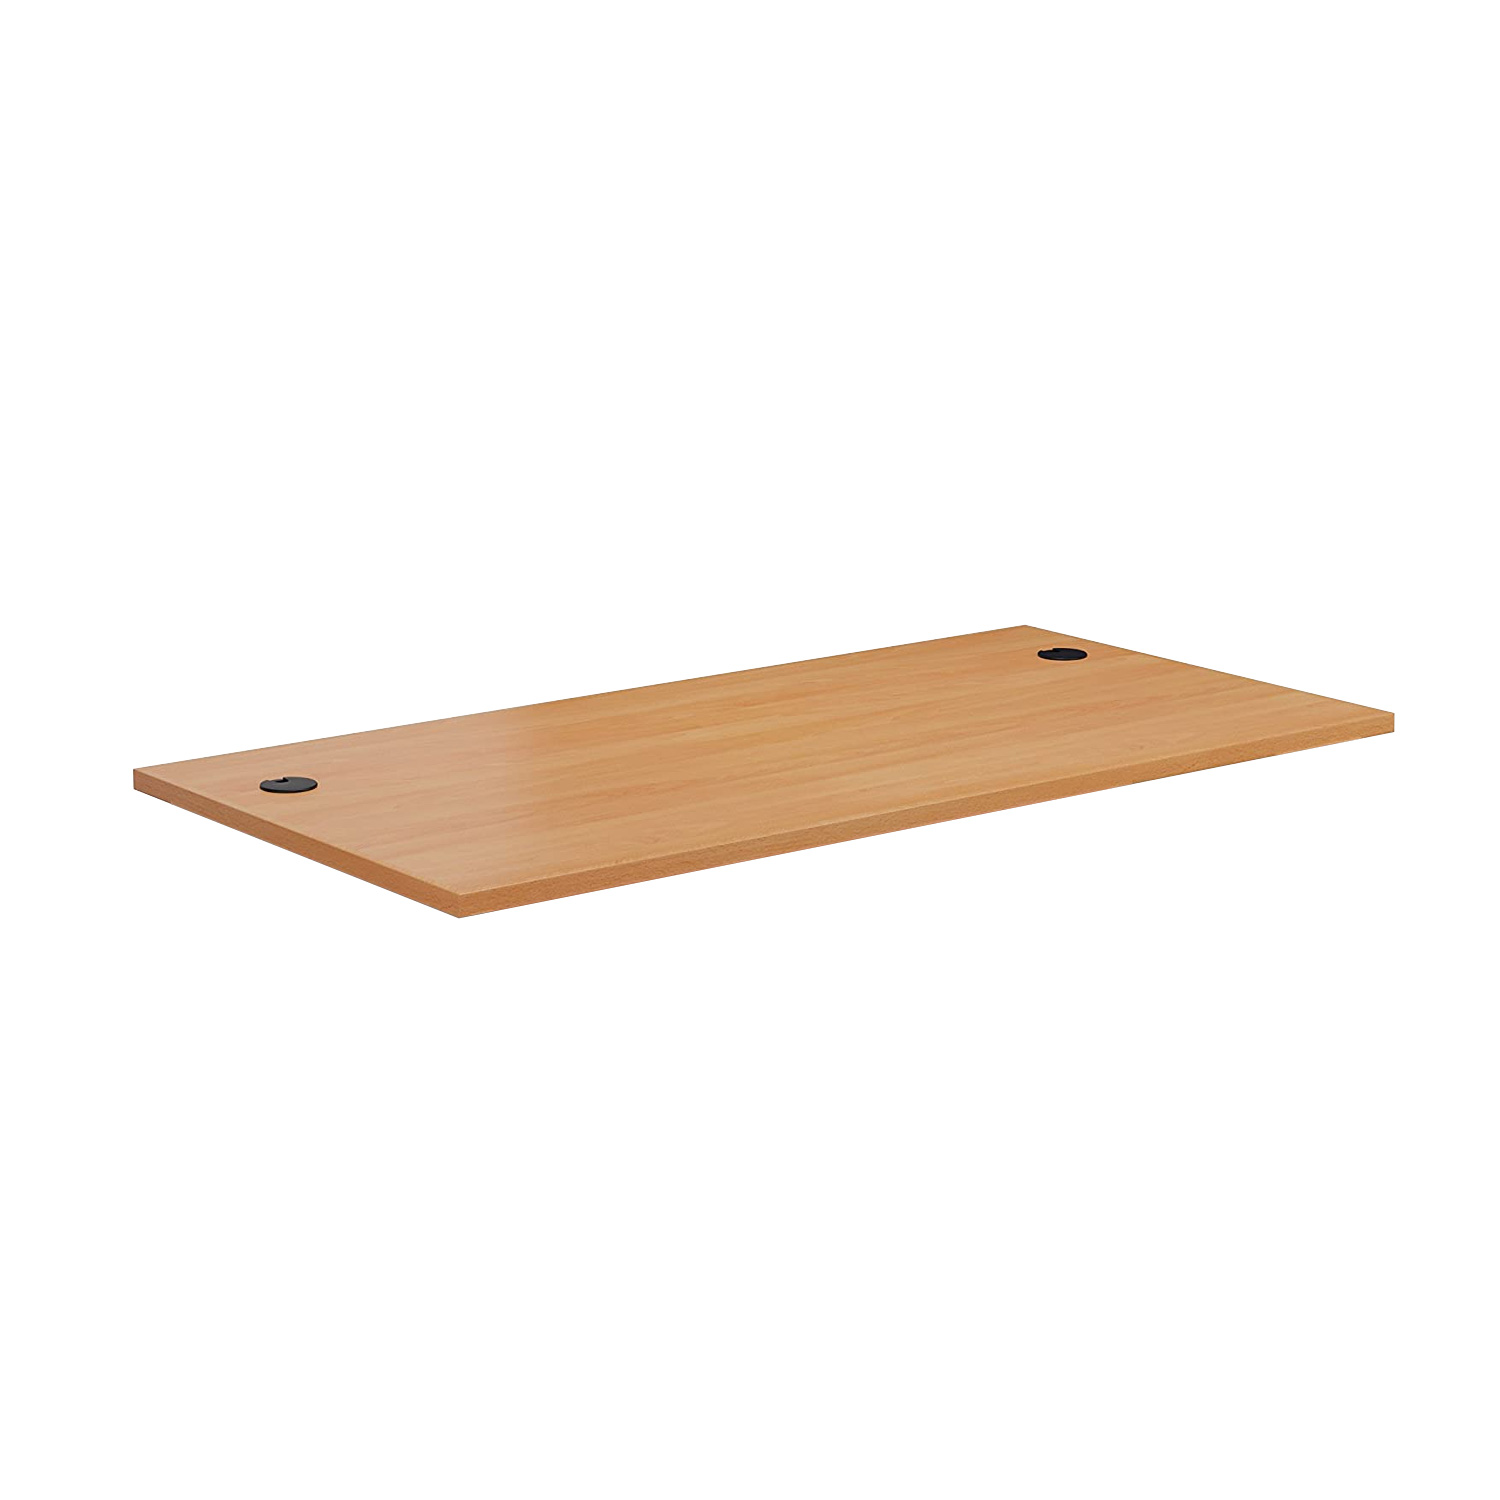 DT148CH8BCH Commercial MFC Desk-top 1400x800 mm with Cable Holes in Beech